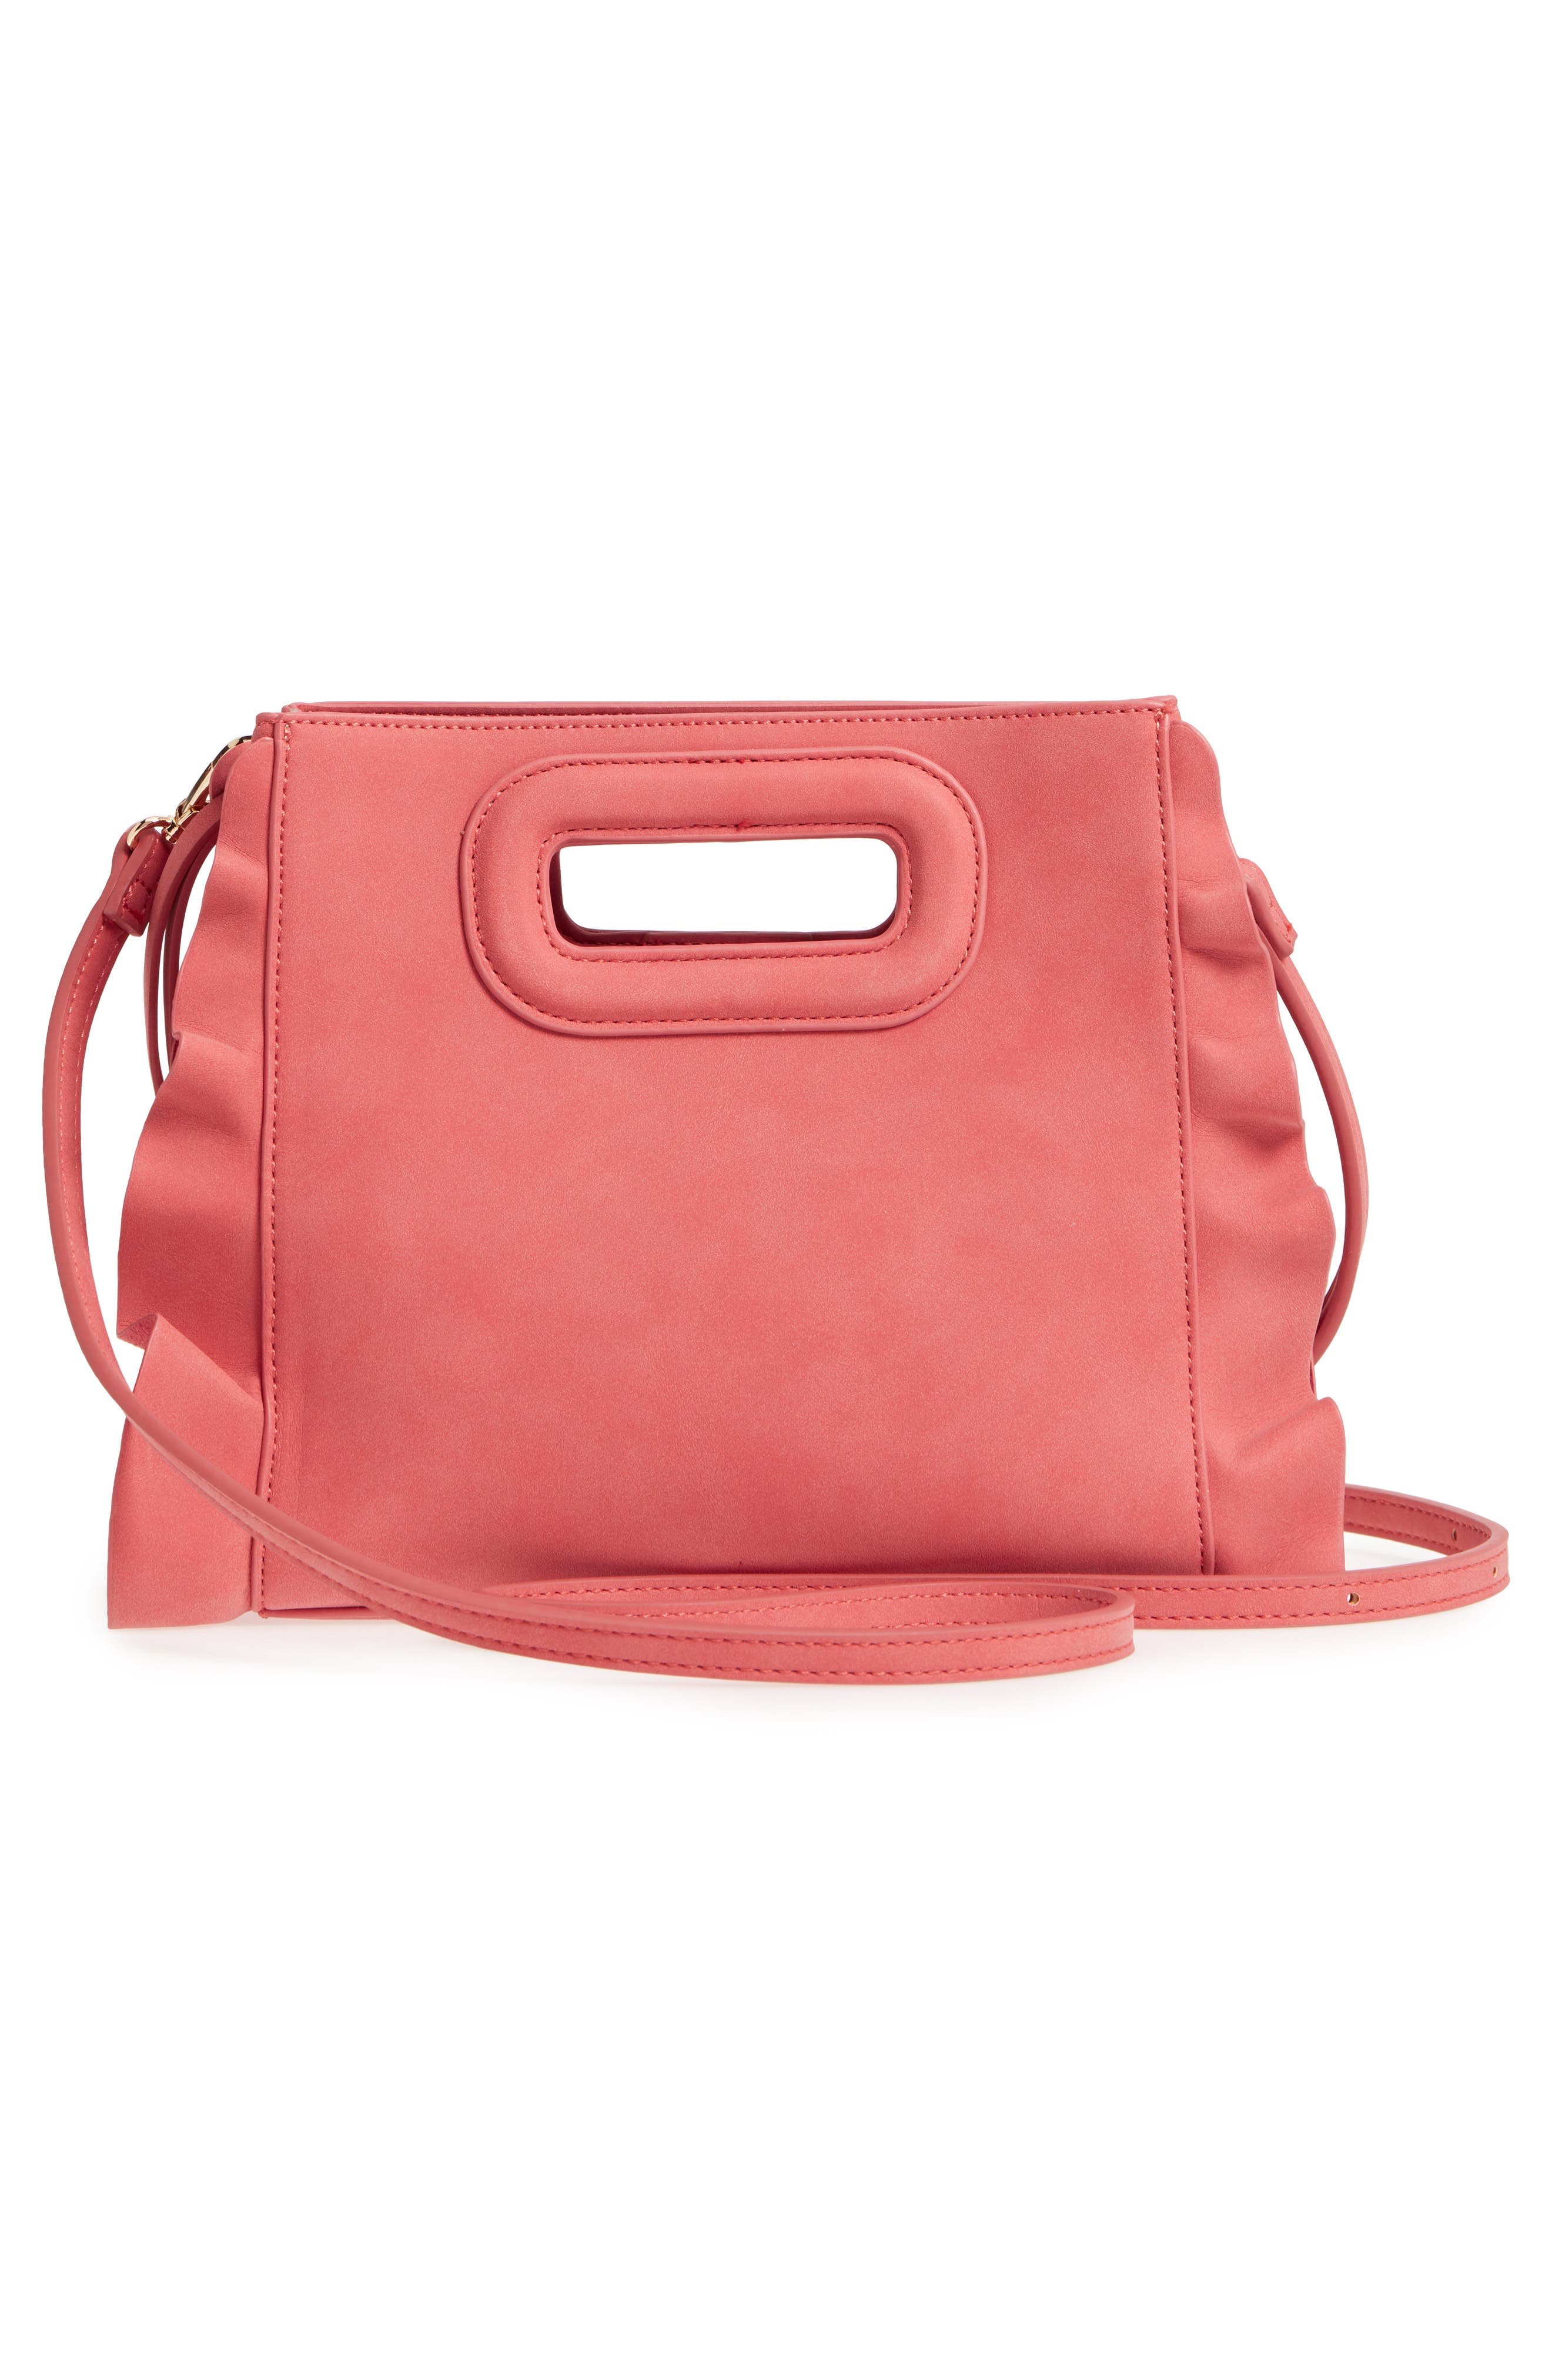 Faux Leather Crossbody Bag,                             Alternate thumbnail 3, color,                             Ginger Spice